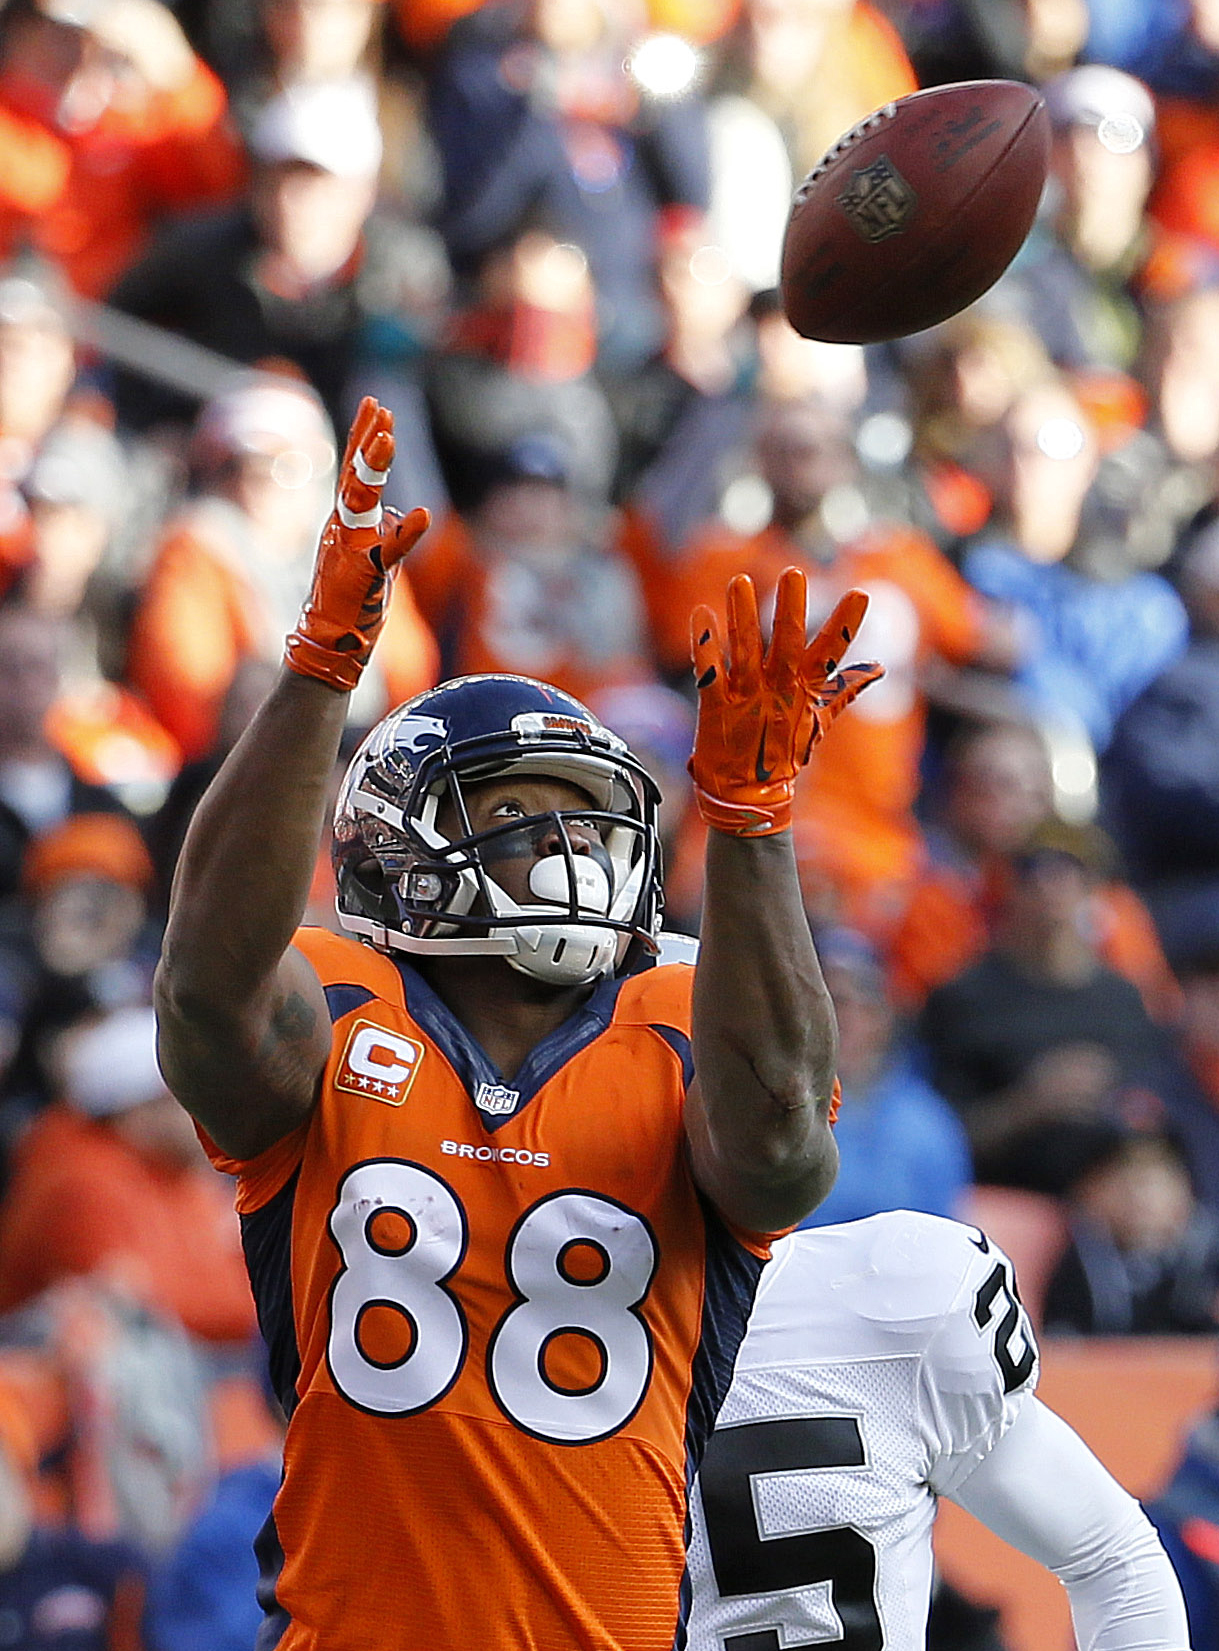 FILE- In this Dec. 28, 2014, file photo, Denver Broncos wide receiver Demaryius Thomas (88) pulls in a pass to set up a touchdown run against the Oakland Raiders during the first half of an NFL football game in Denver. Thomas said Monday, March 30, 2015,